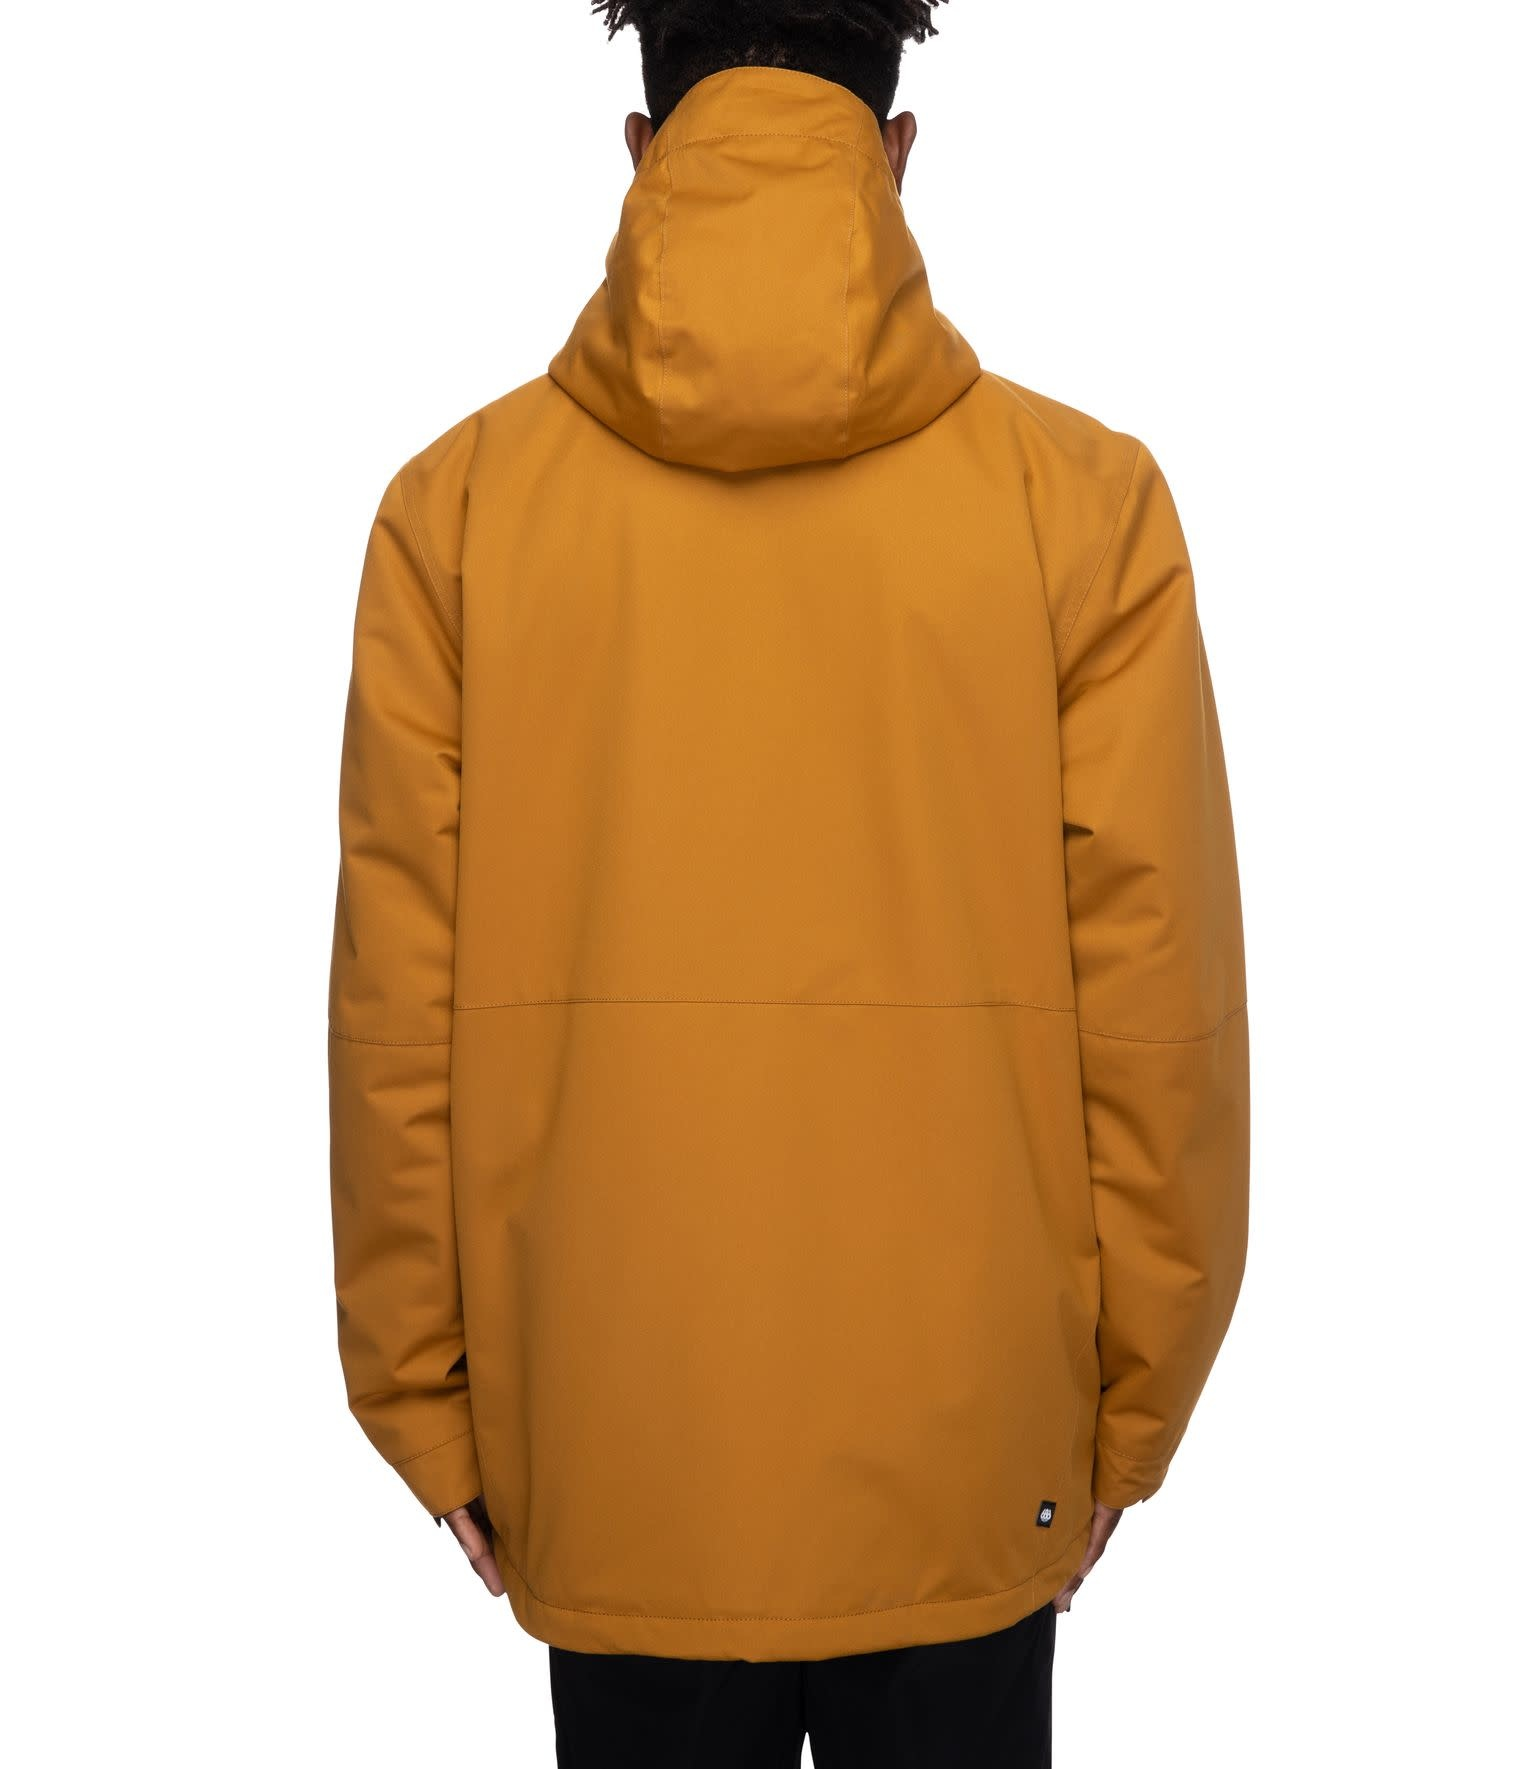 686 686 M's Foundation Insulated Jacket